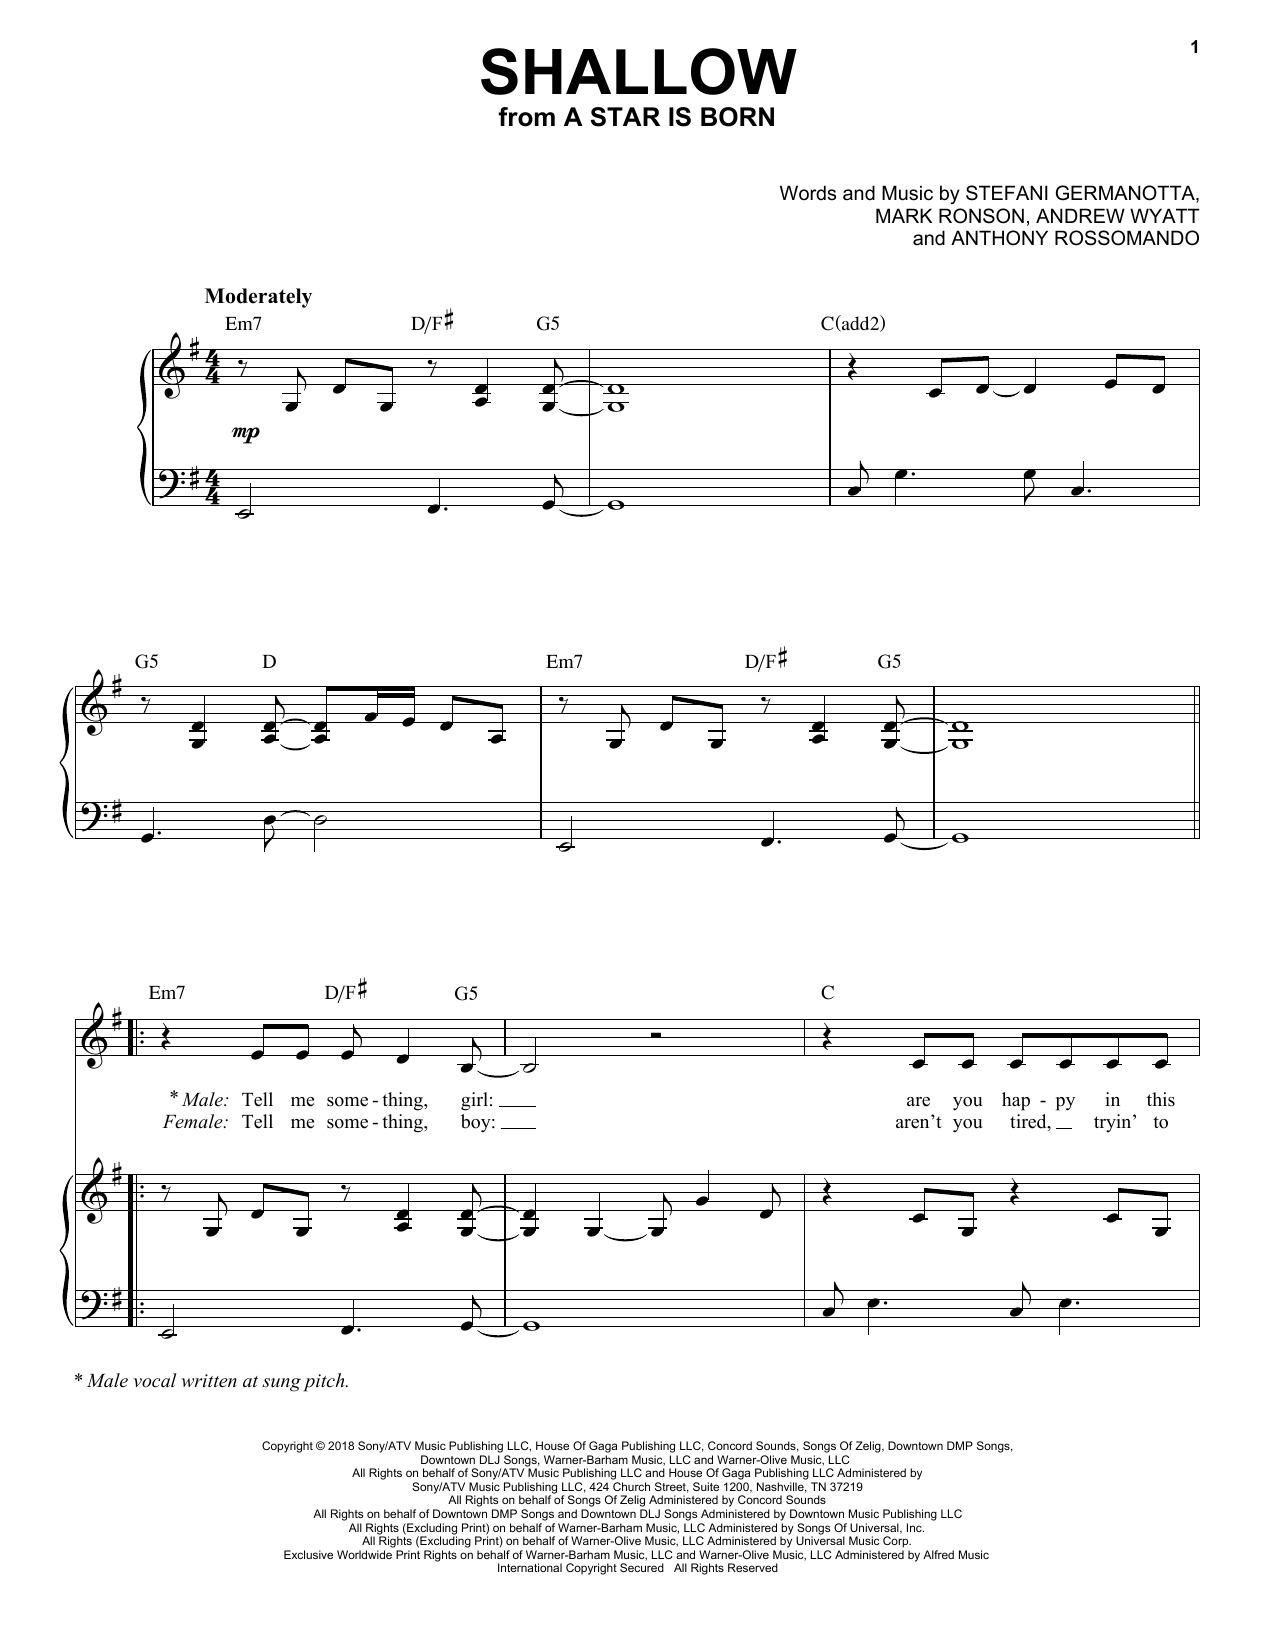 photograph about All of Me Easy Piano Sheet Music Free Printable called Shallow (towards A Star Is Born)